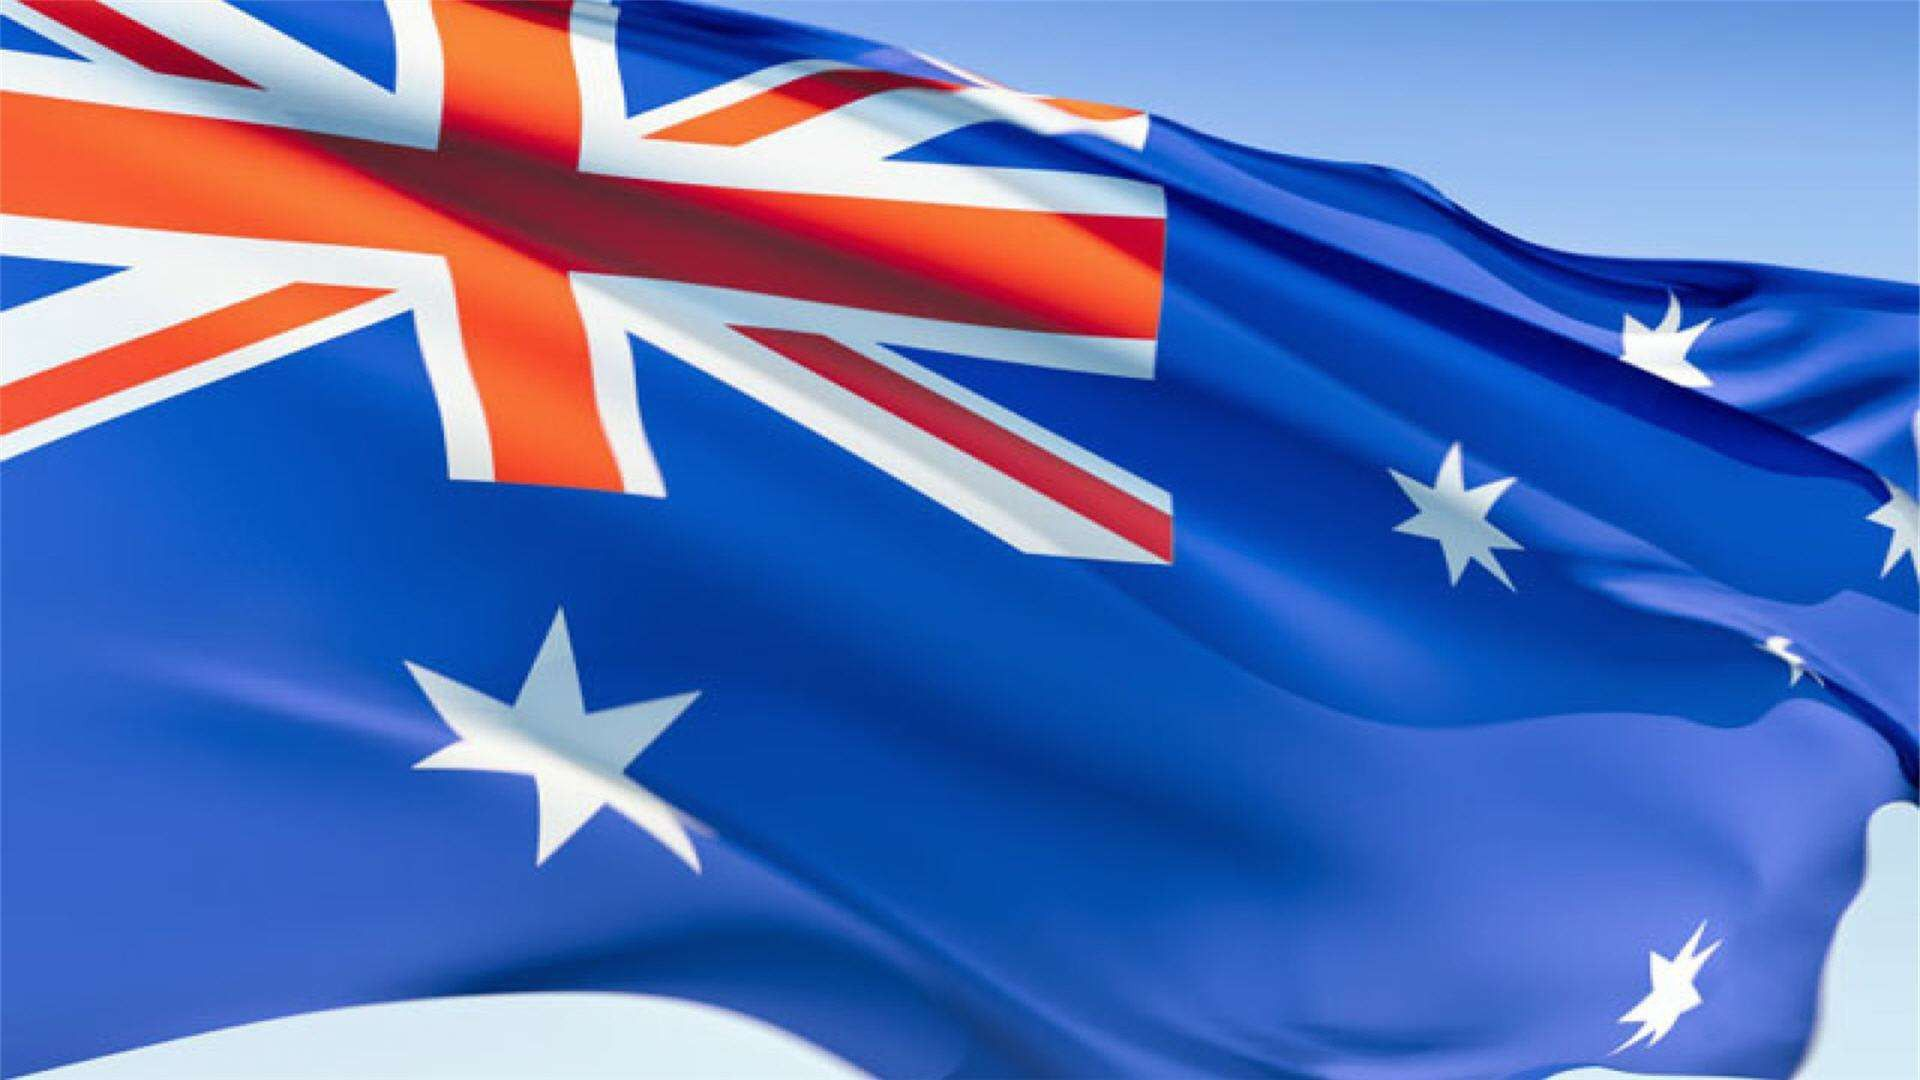 Australia Day Wallpaper 71 images in Collection Page 1 1920x1080